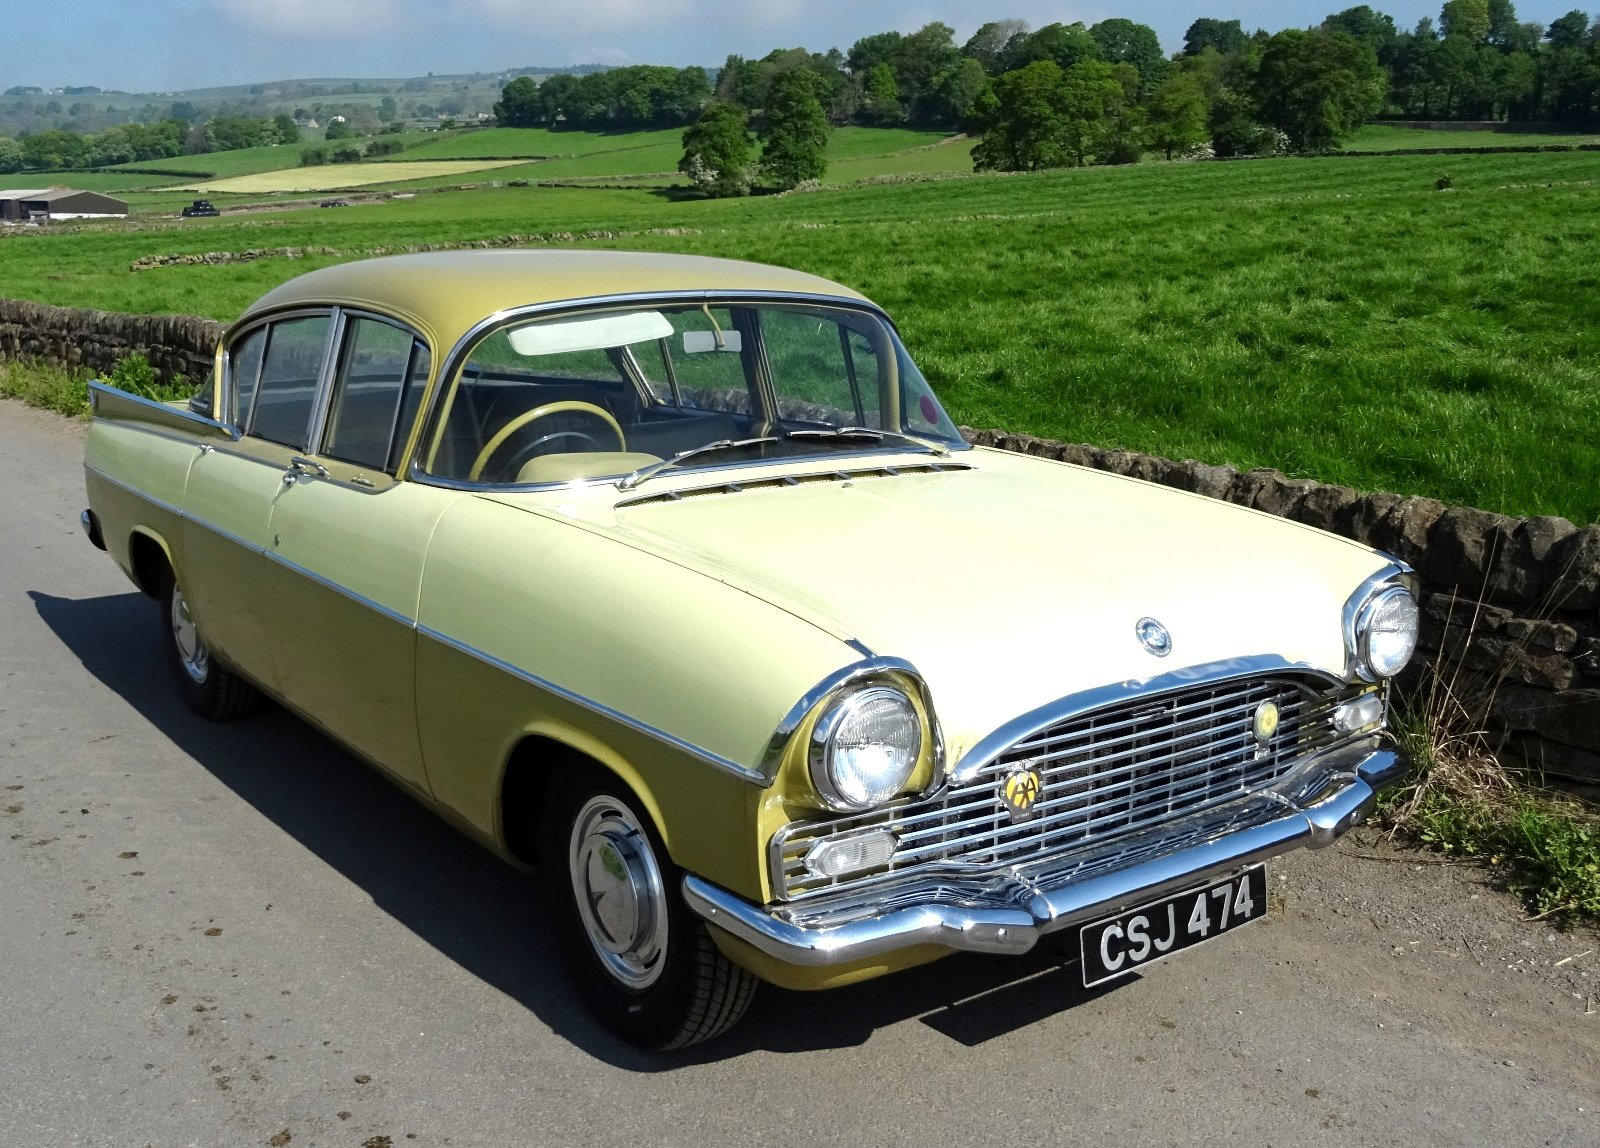 1961 VAUXHALL CRESTA STYLISH CLASSIC RARE COLOUR SCHEME AND SEATS For Sale (picture 1 of 6)